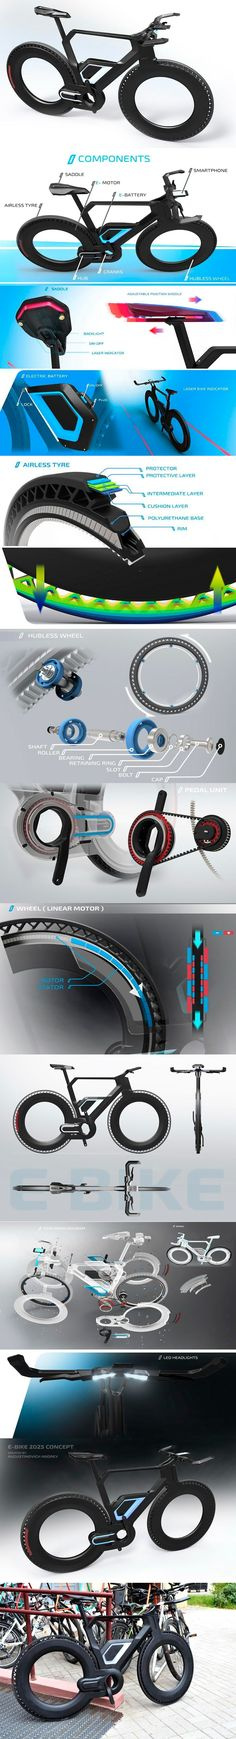 The electric bike designer: Avgustinovich Andrey